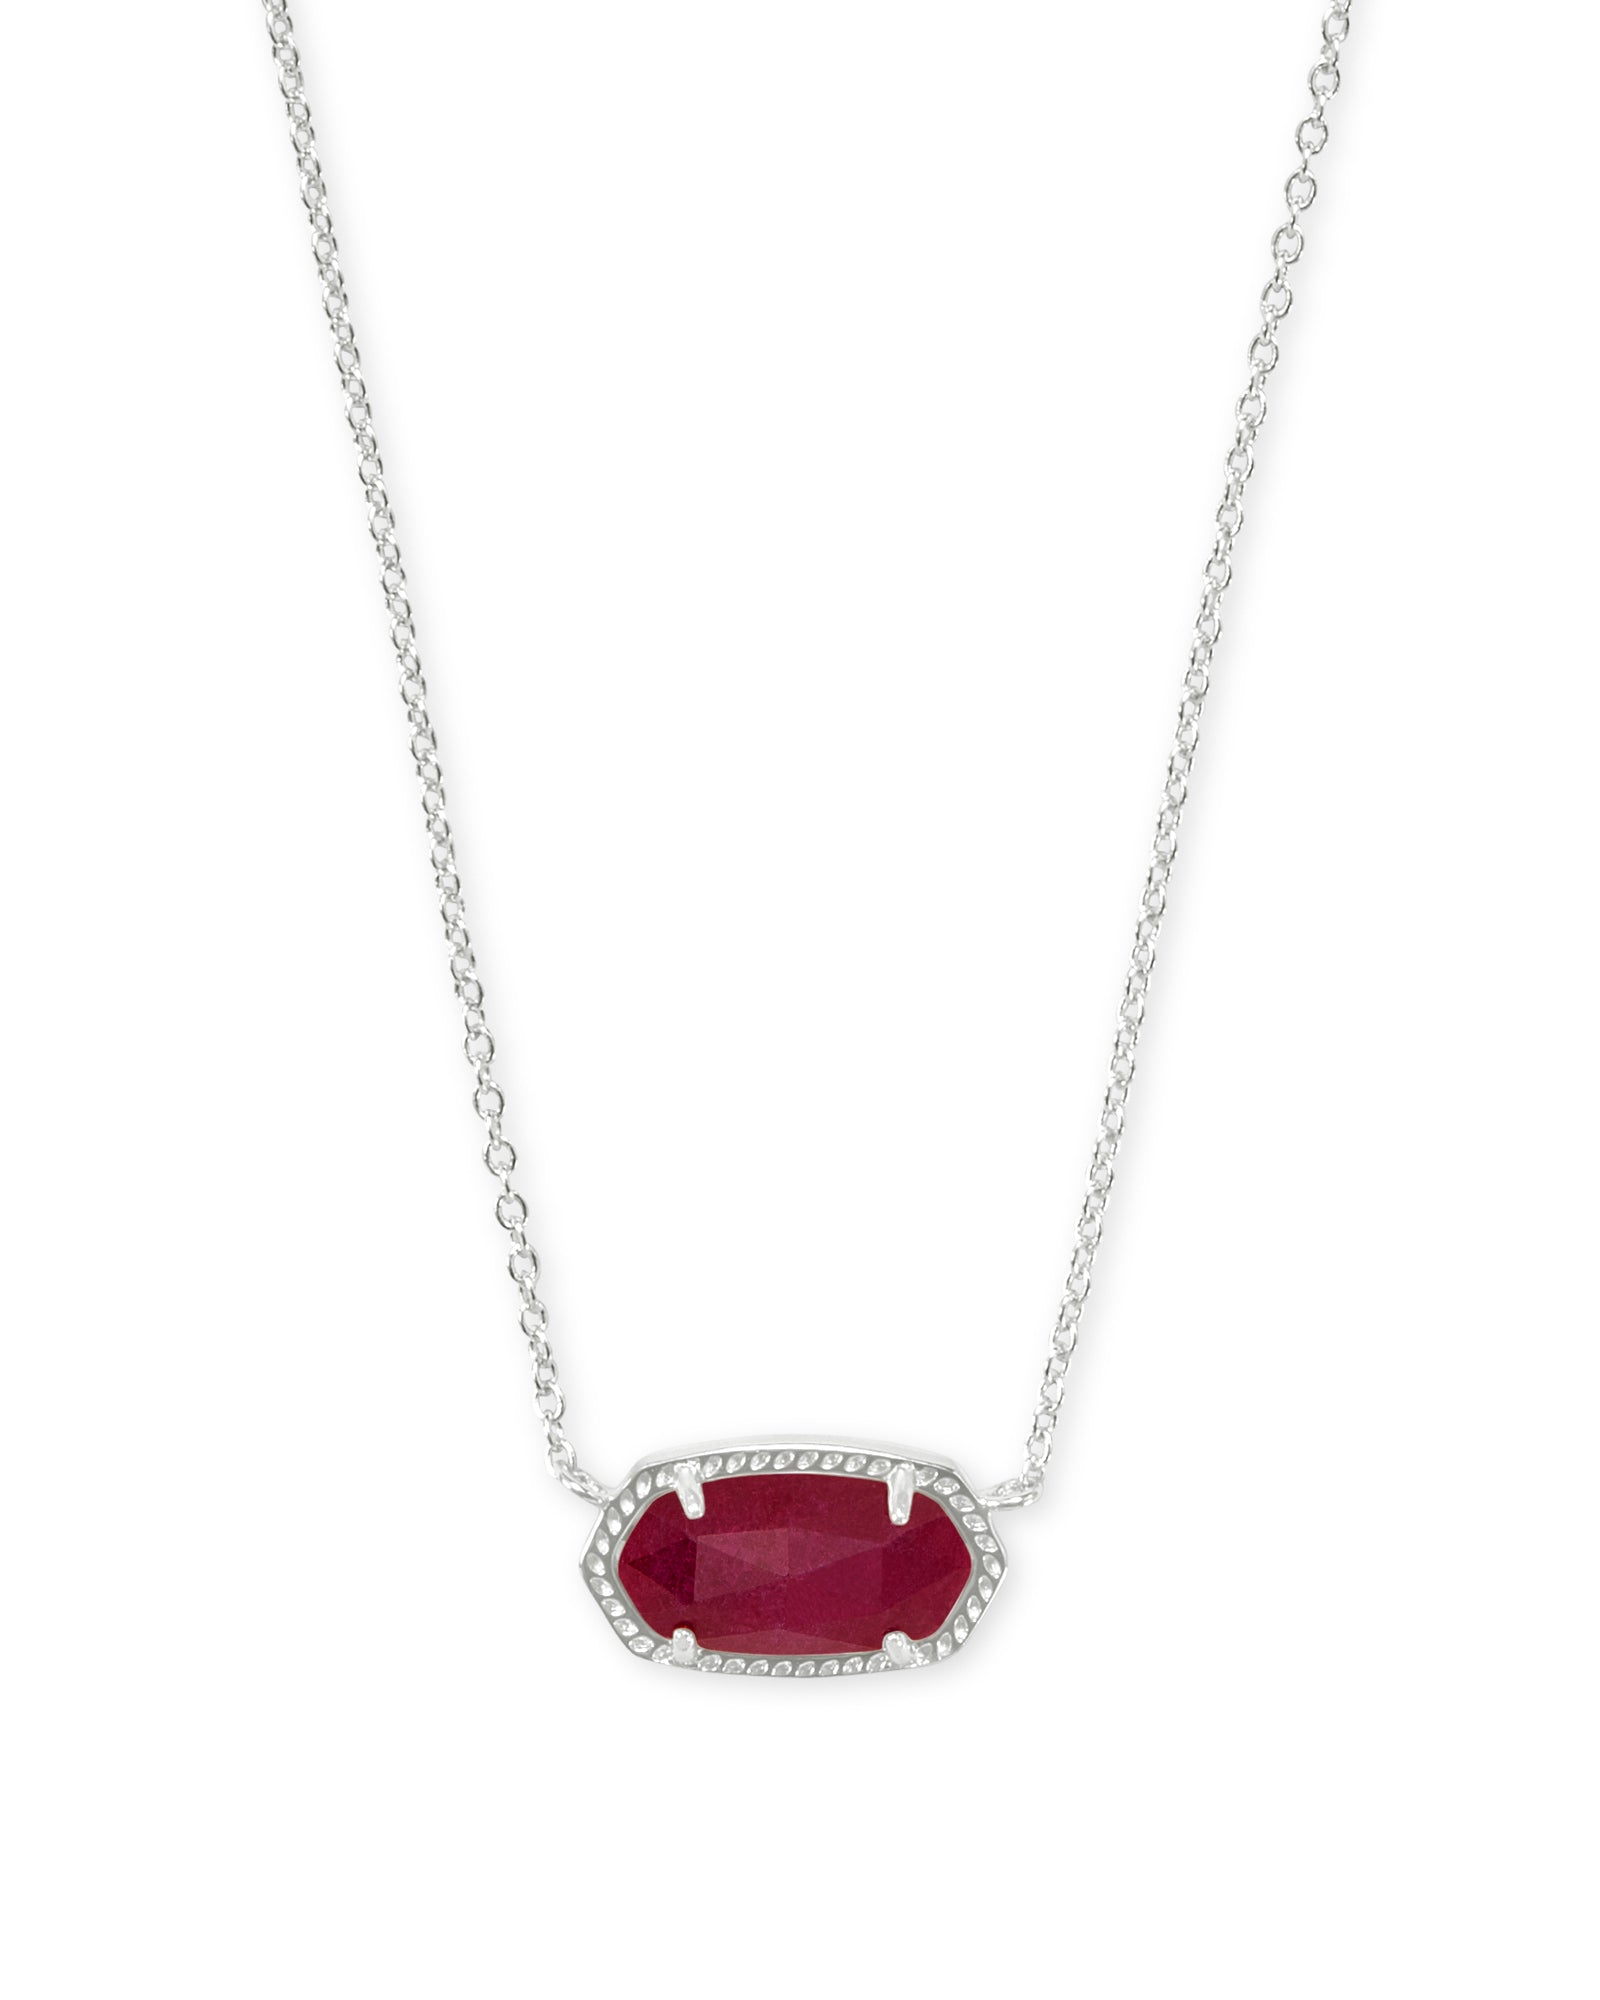 ELISA NECKLACE RHOD MAROON JADE